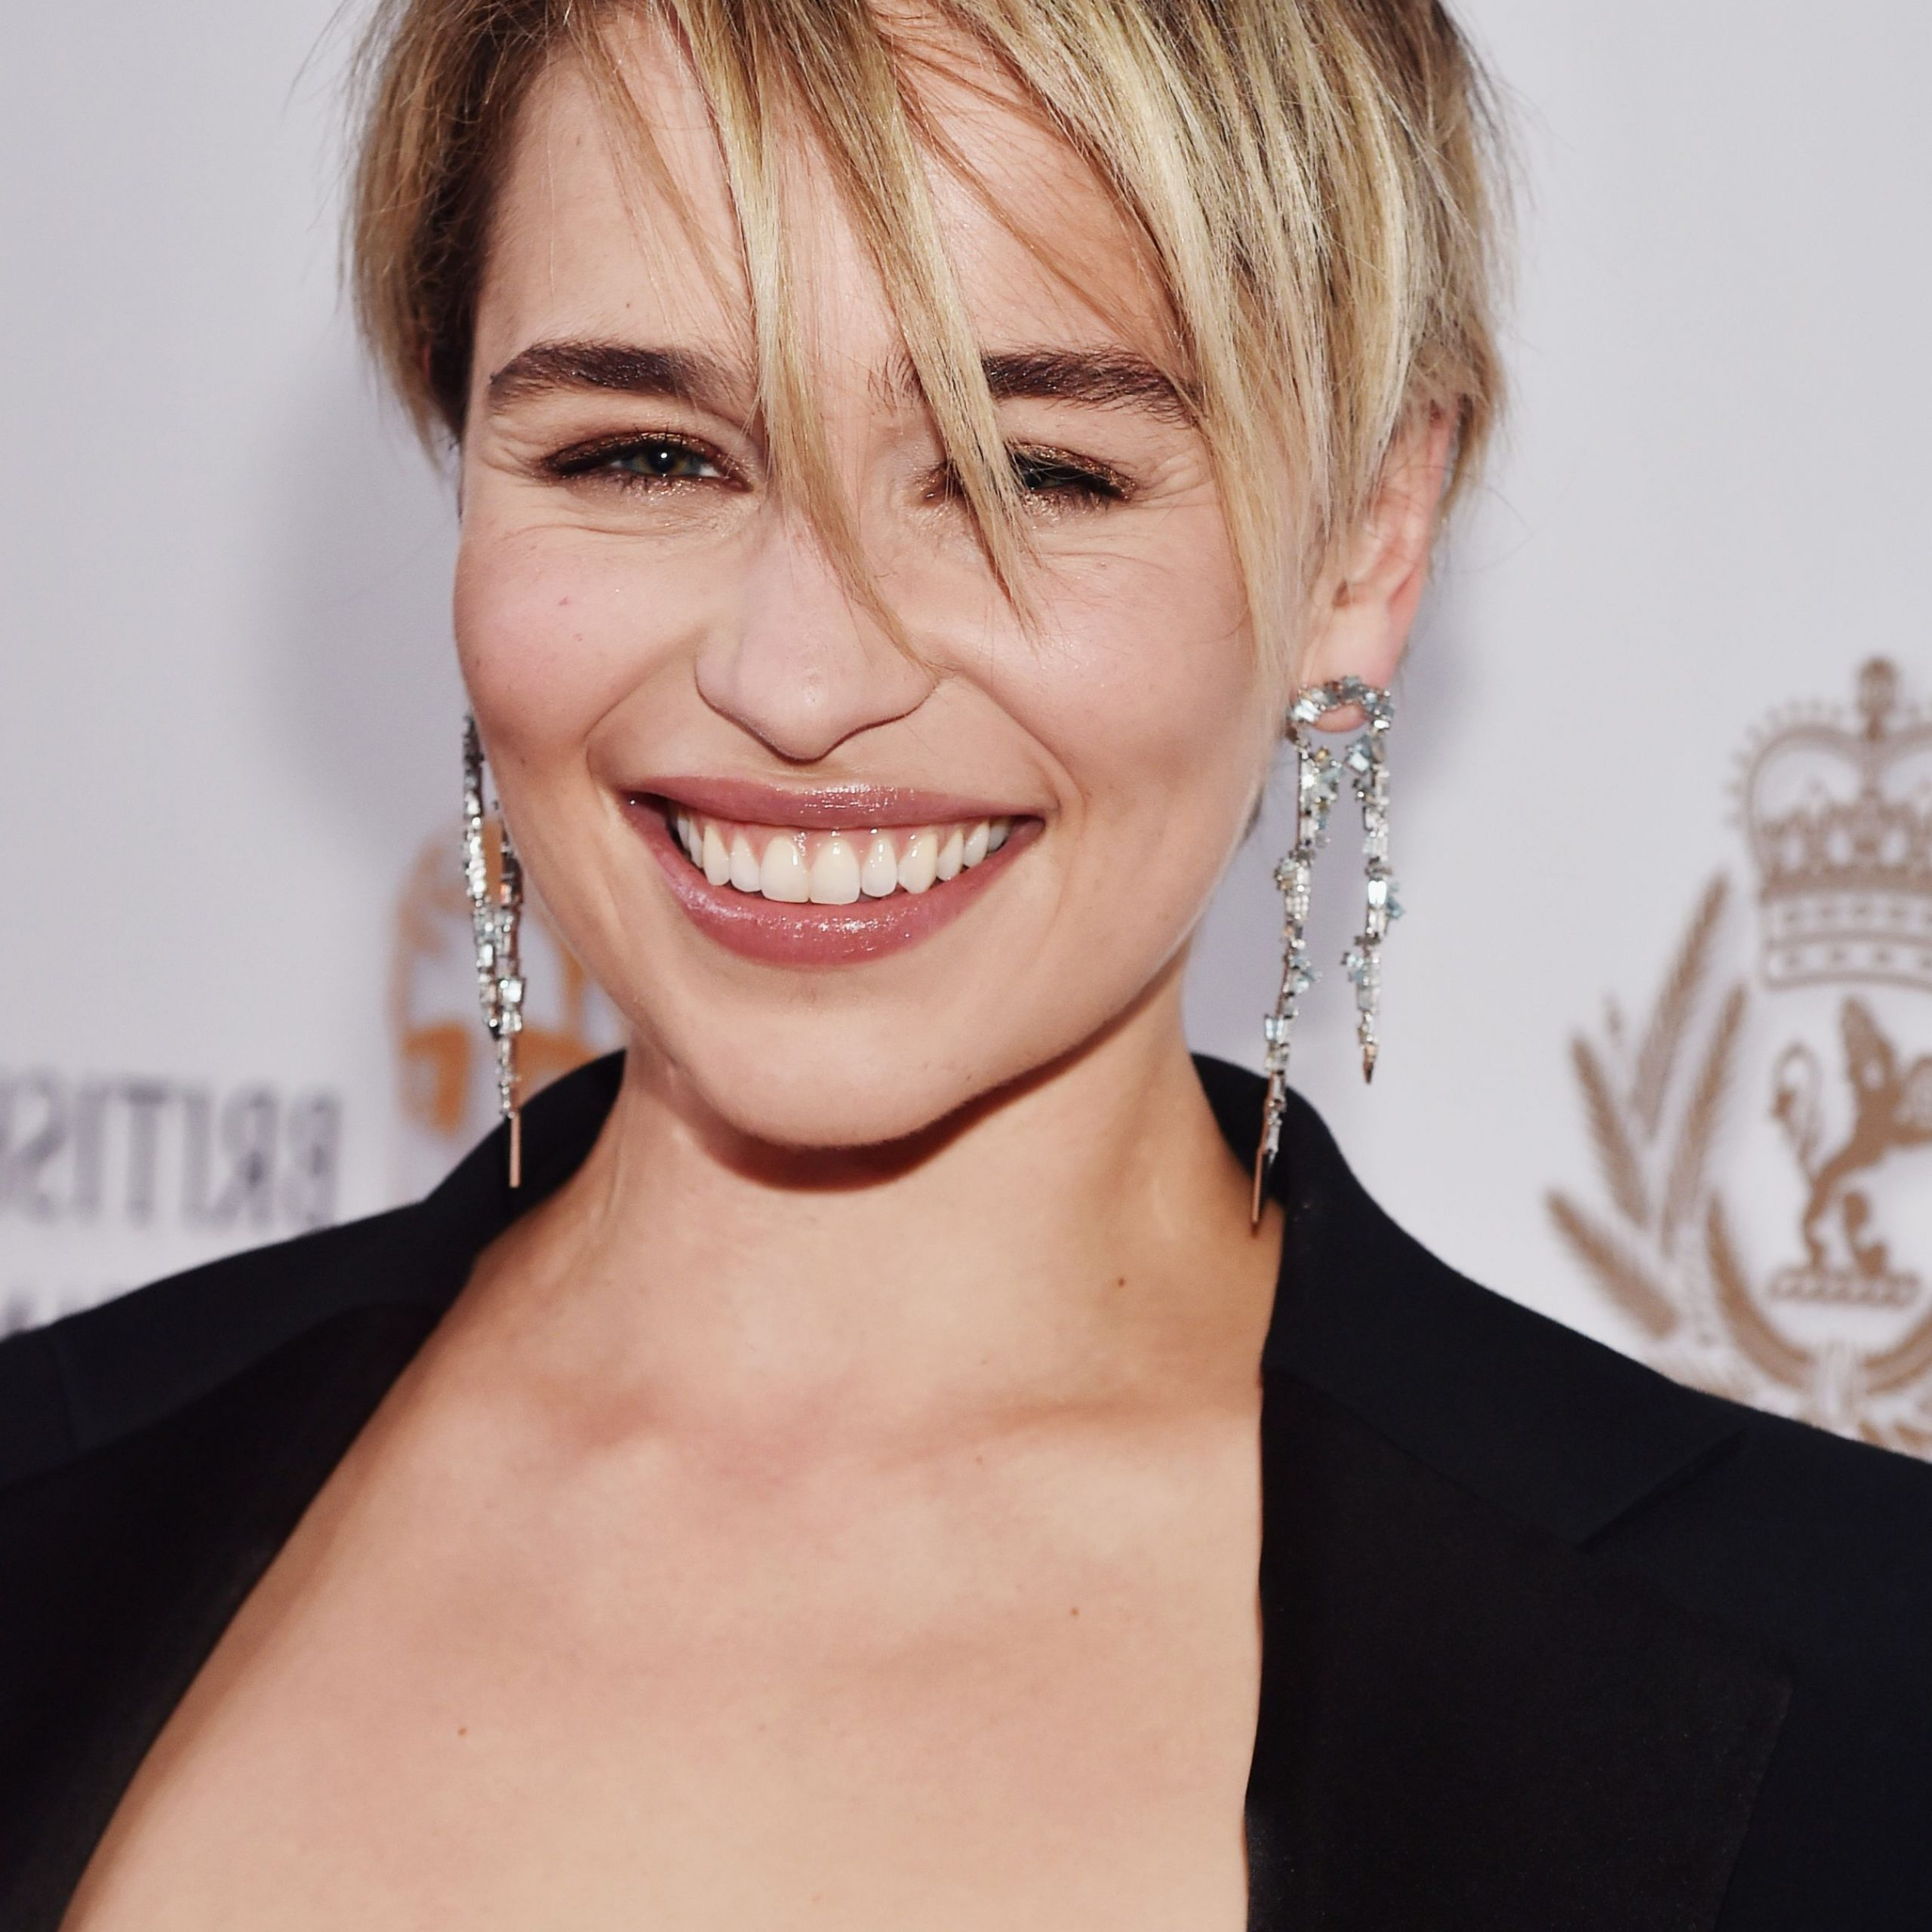 Most Popular Choppy Pixie Haircuts With Short Bangs Intended For 91 Best Pixie Cut Hairstyle Ideas 2020 – Cute Celebrity (View 11 of 20)